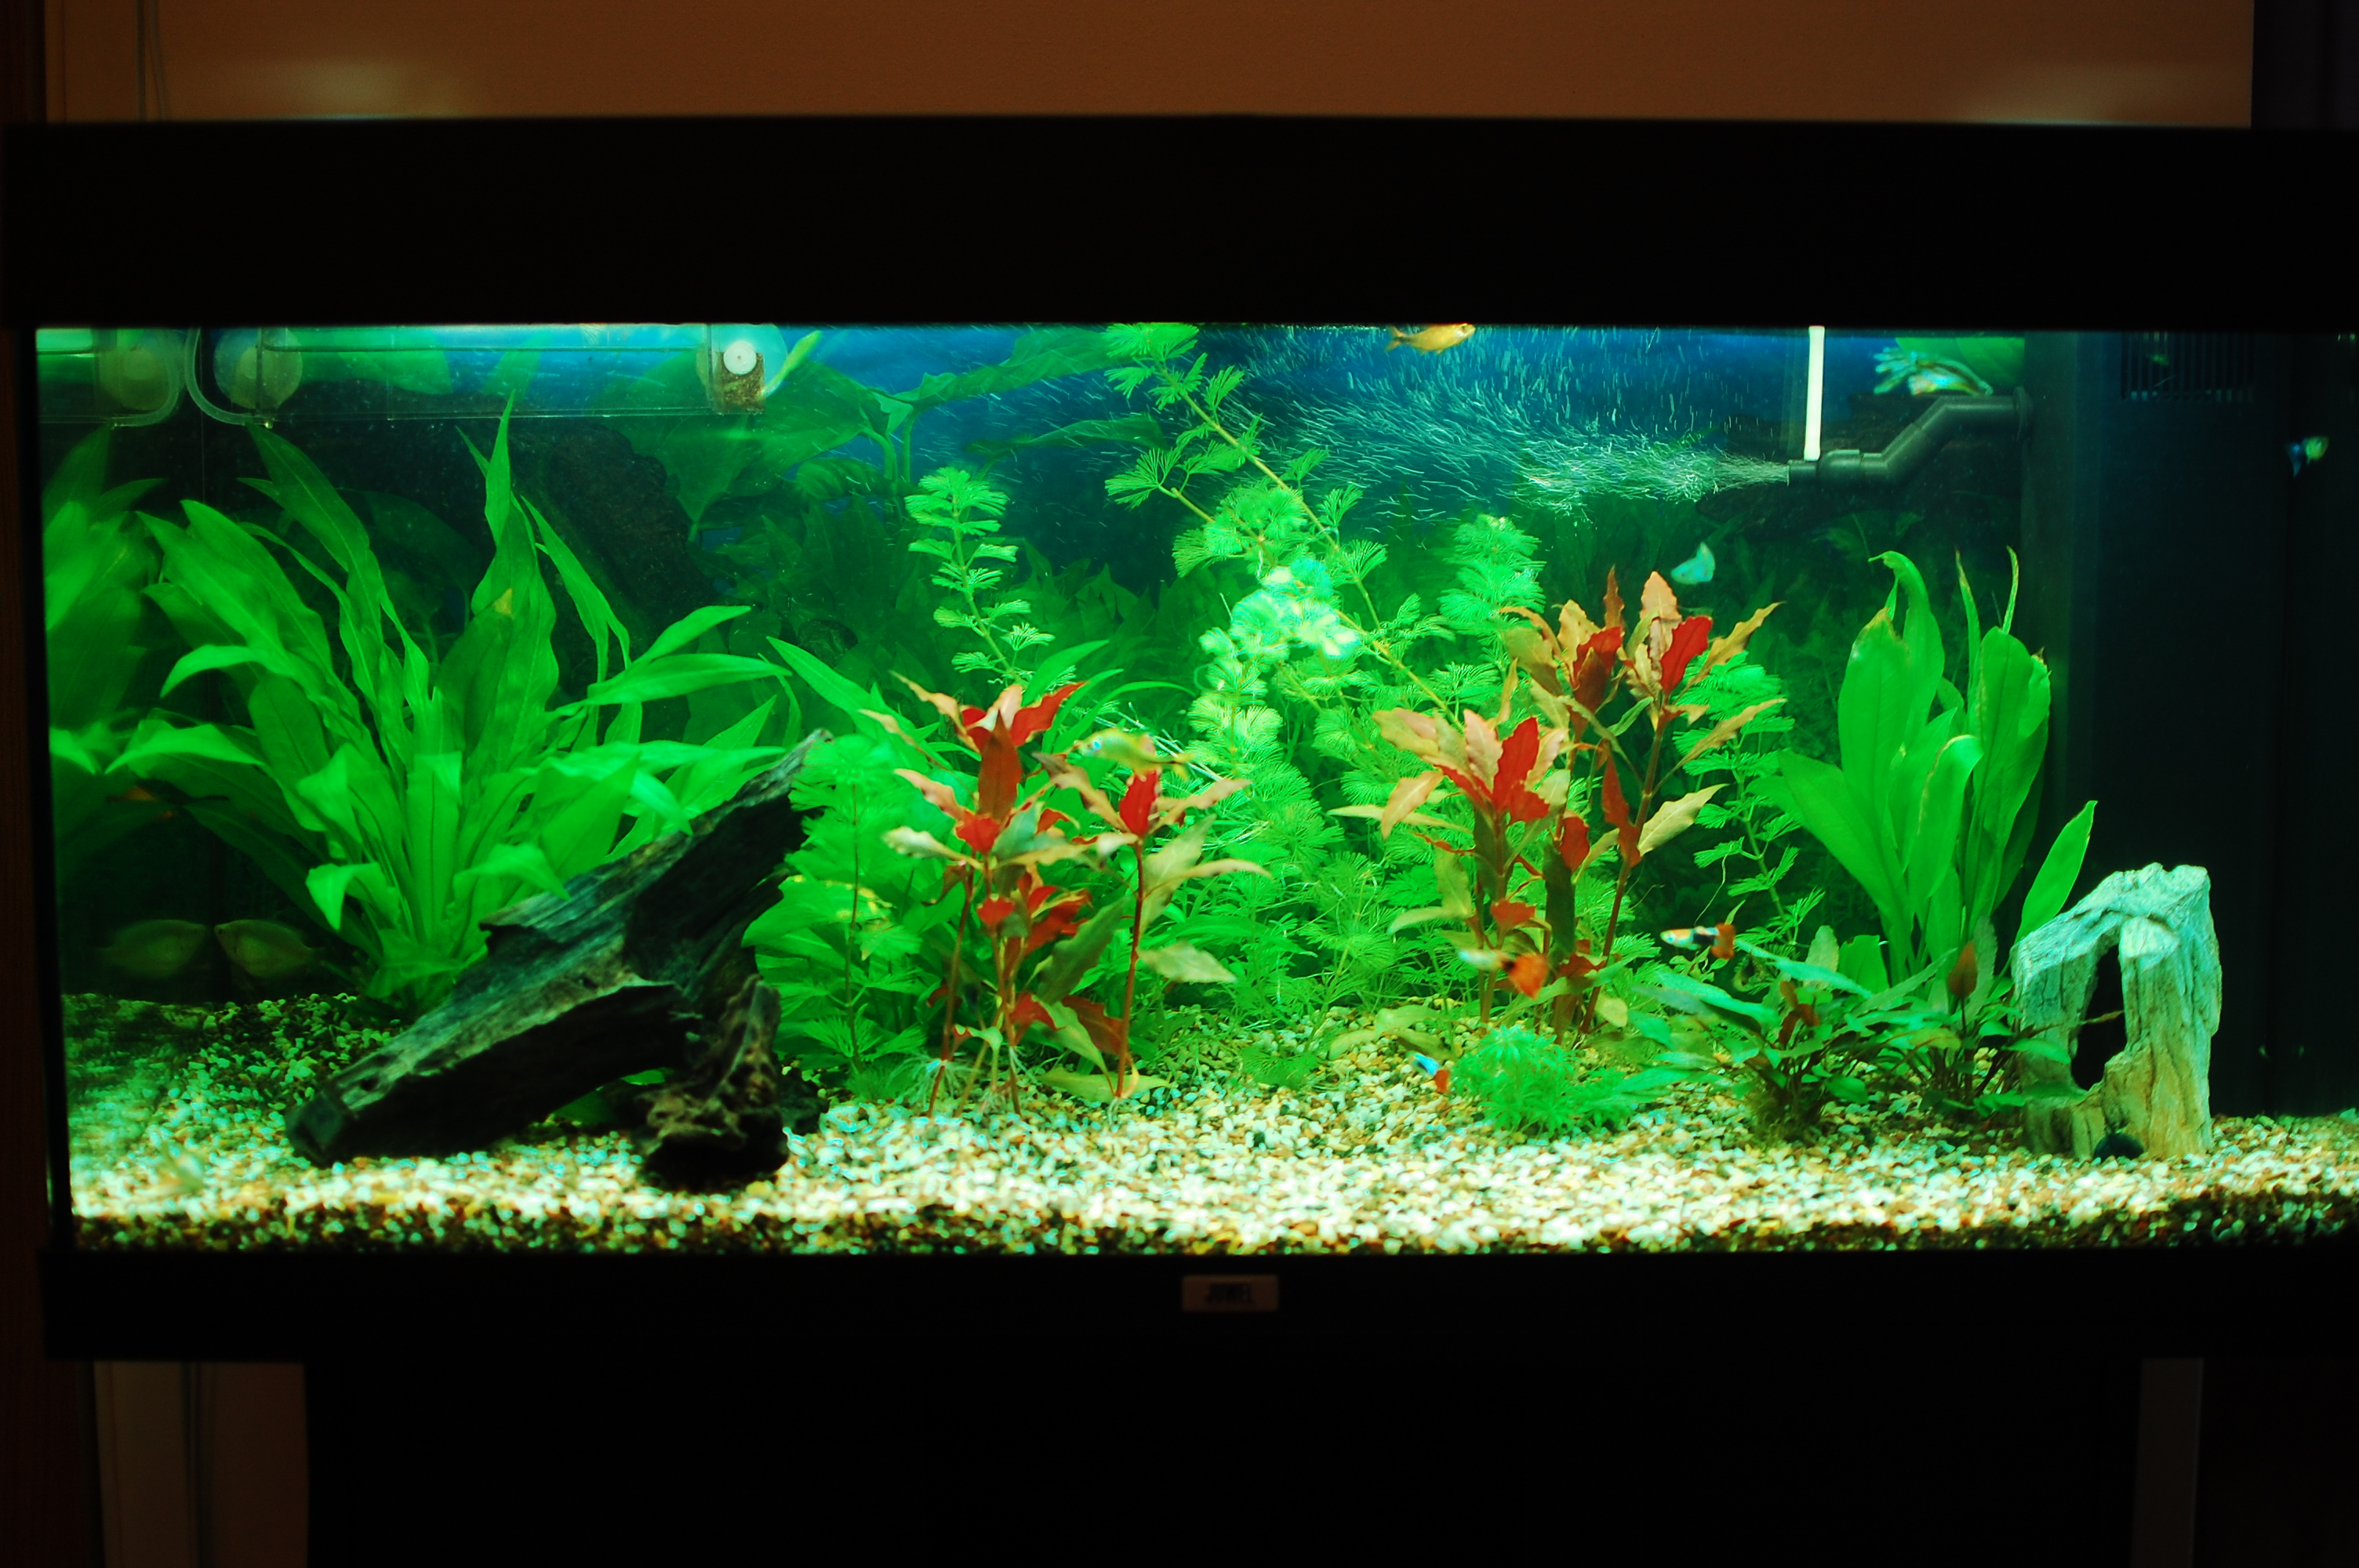 Our Freshwater Aquarium 30 10 2010 Or How I Made My Freshwater Aquarium Beautiful